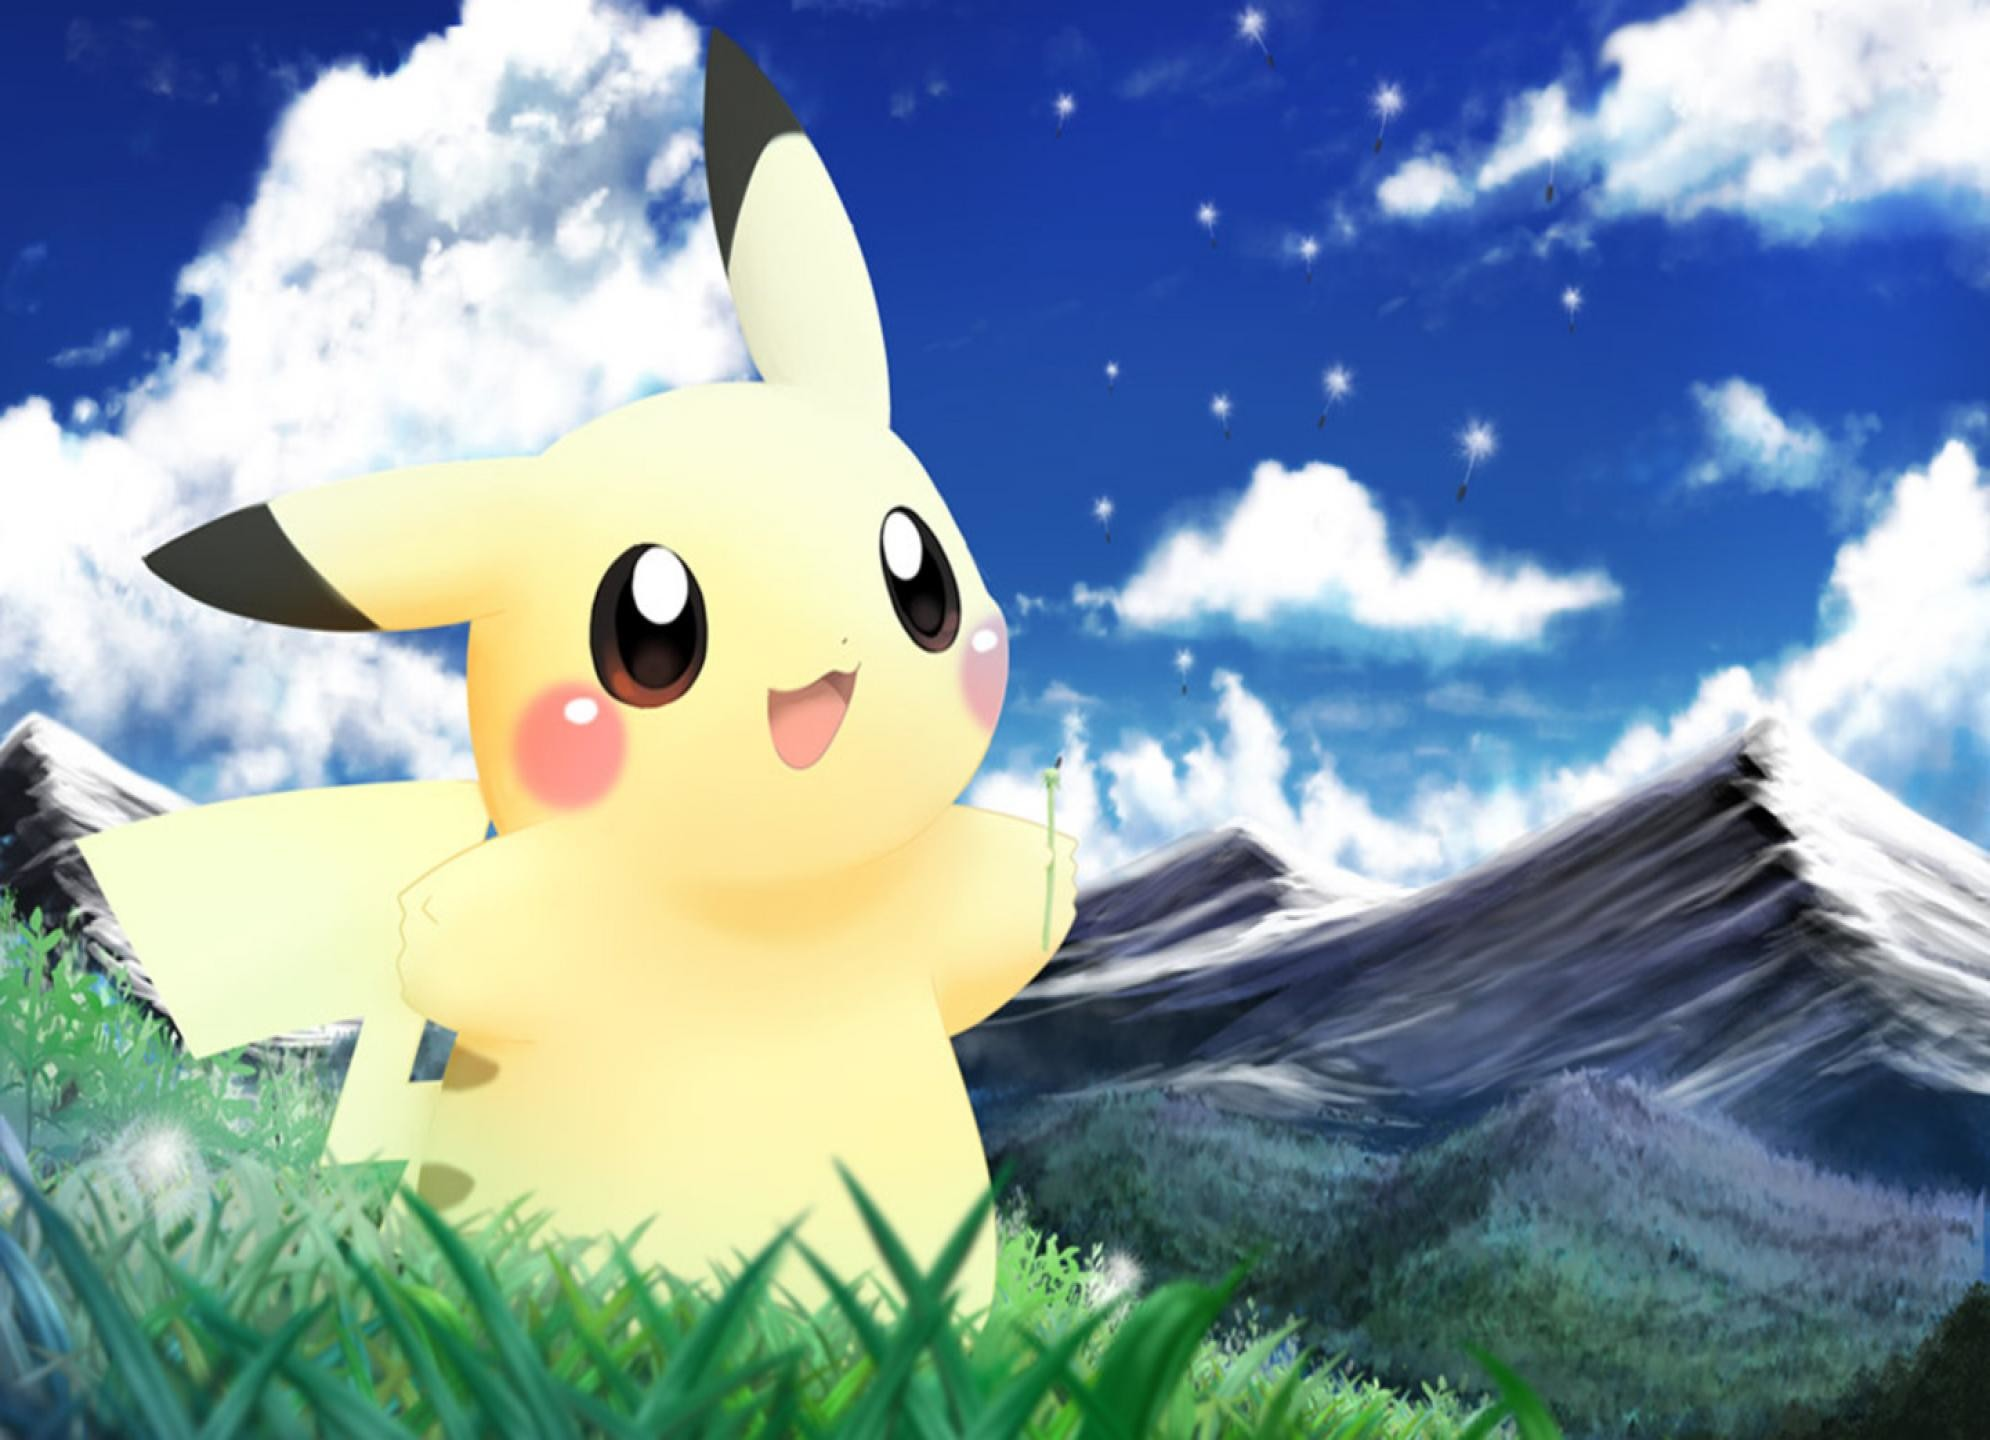 1990x1440 HD Wallpaper and background photos of Pikachu Wallpaper for fans of Pikachu  images.